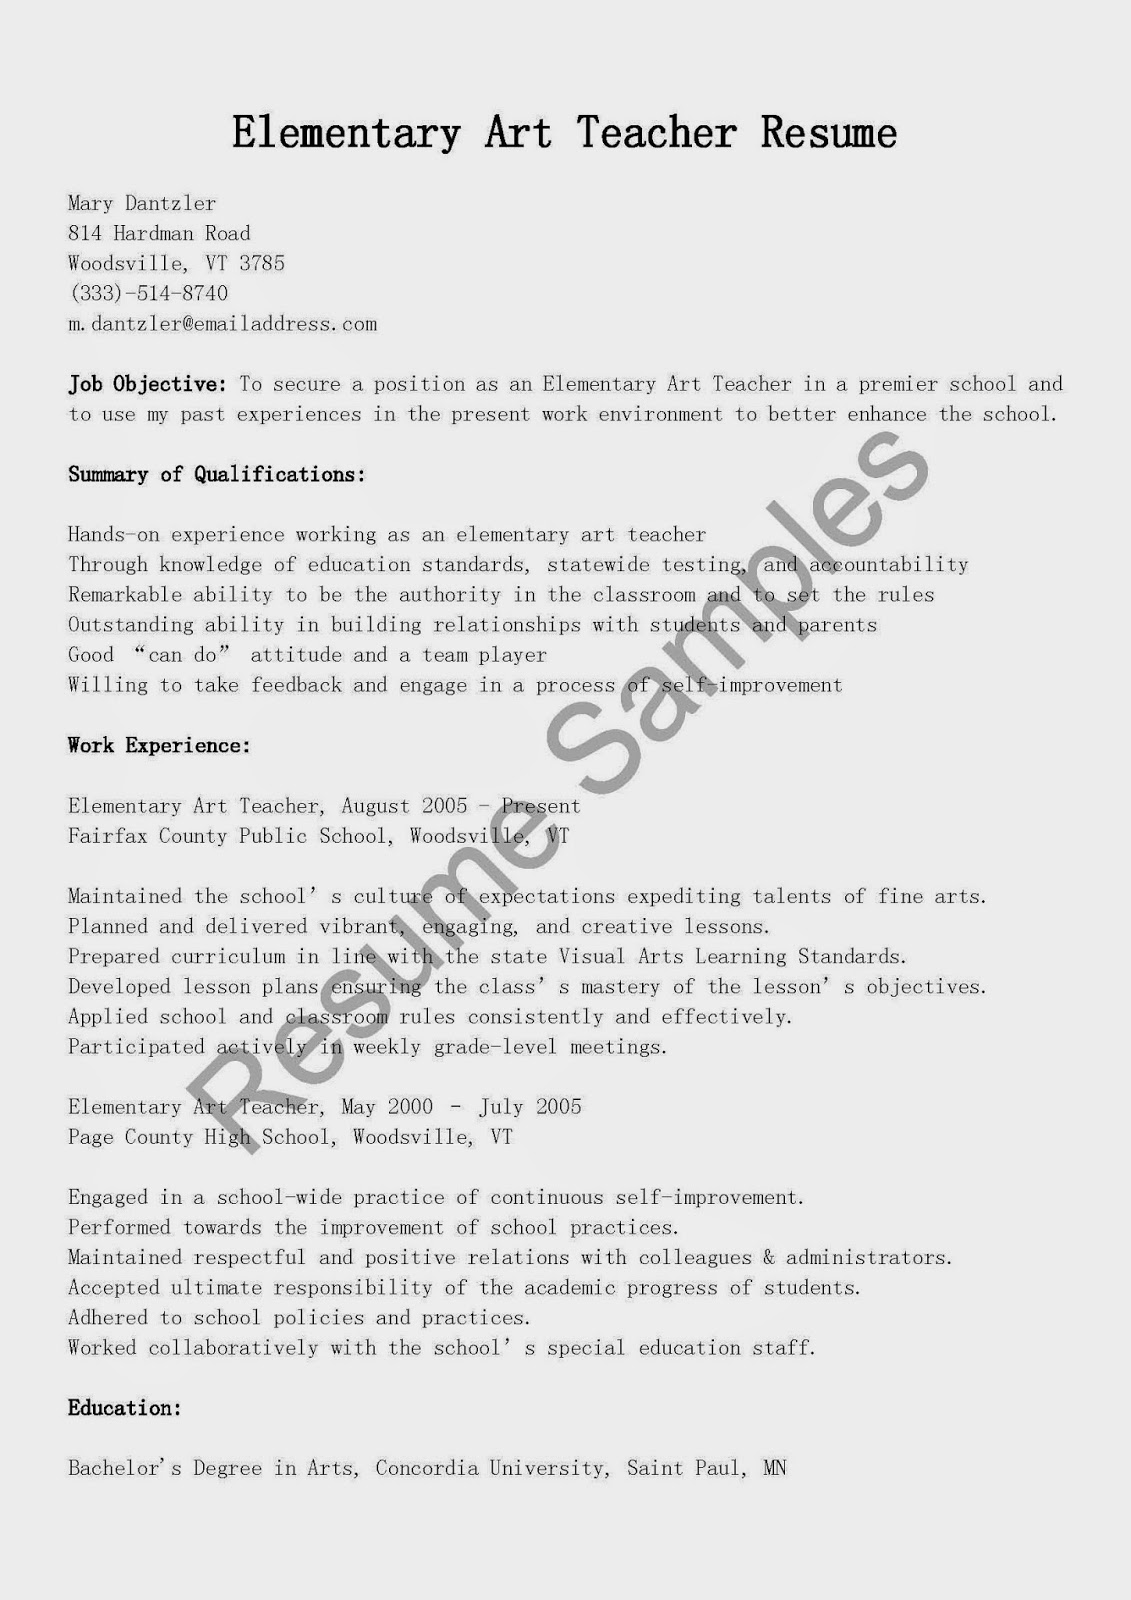 teacher resume examples nsw sample resumes sample cover letters teacher resume examples nsw resume writing and interview workshop overview skills for math teacher resume samples